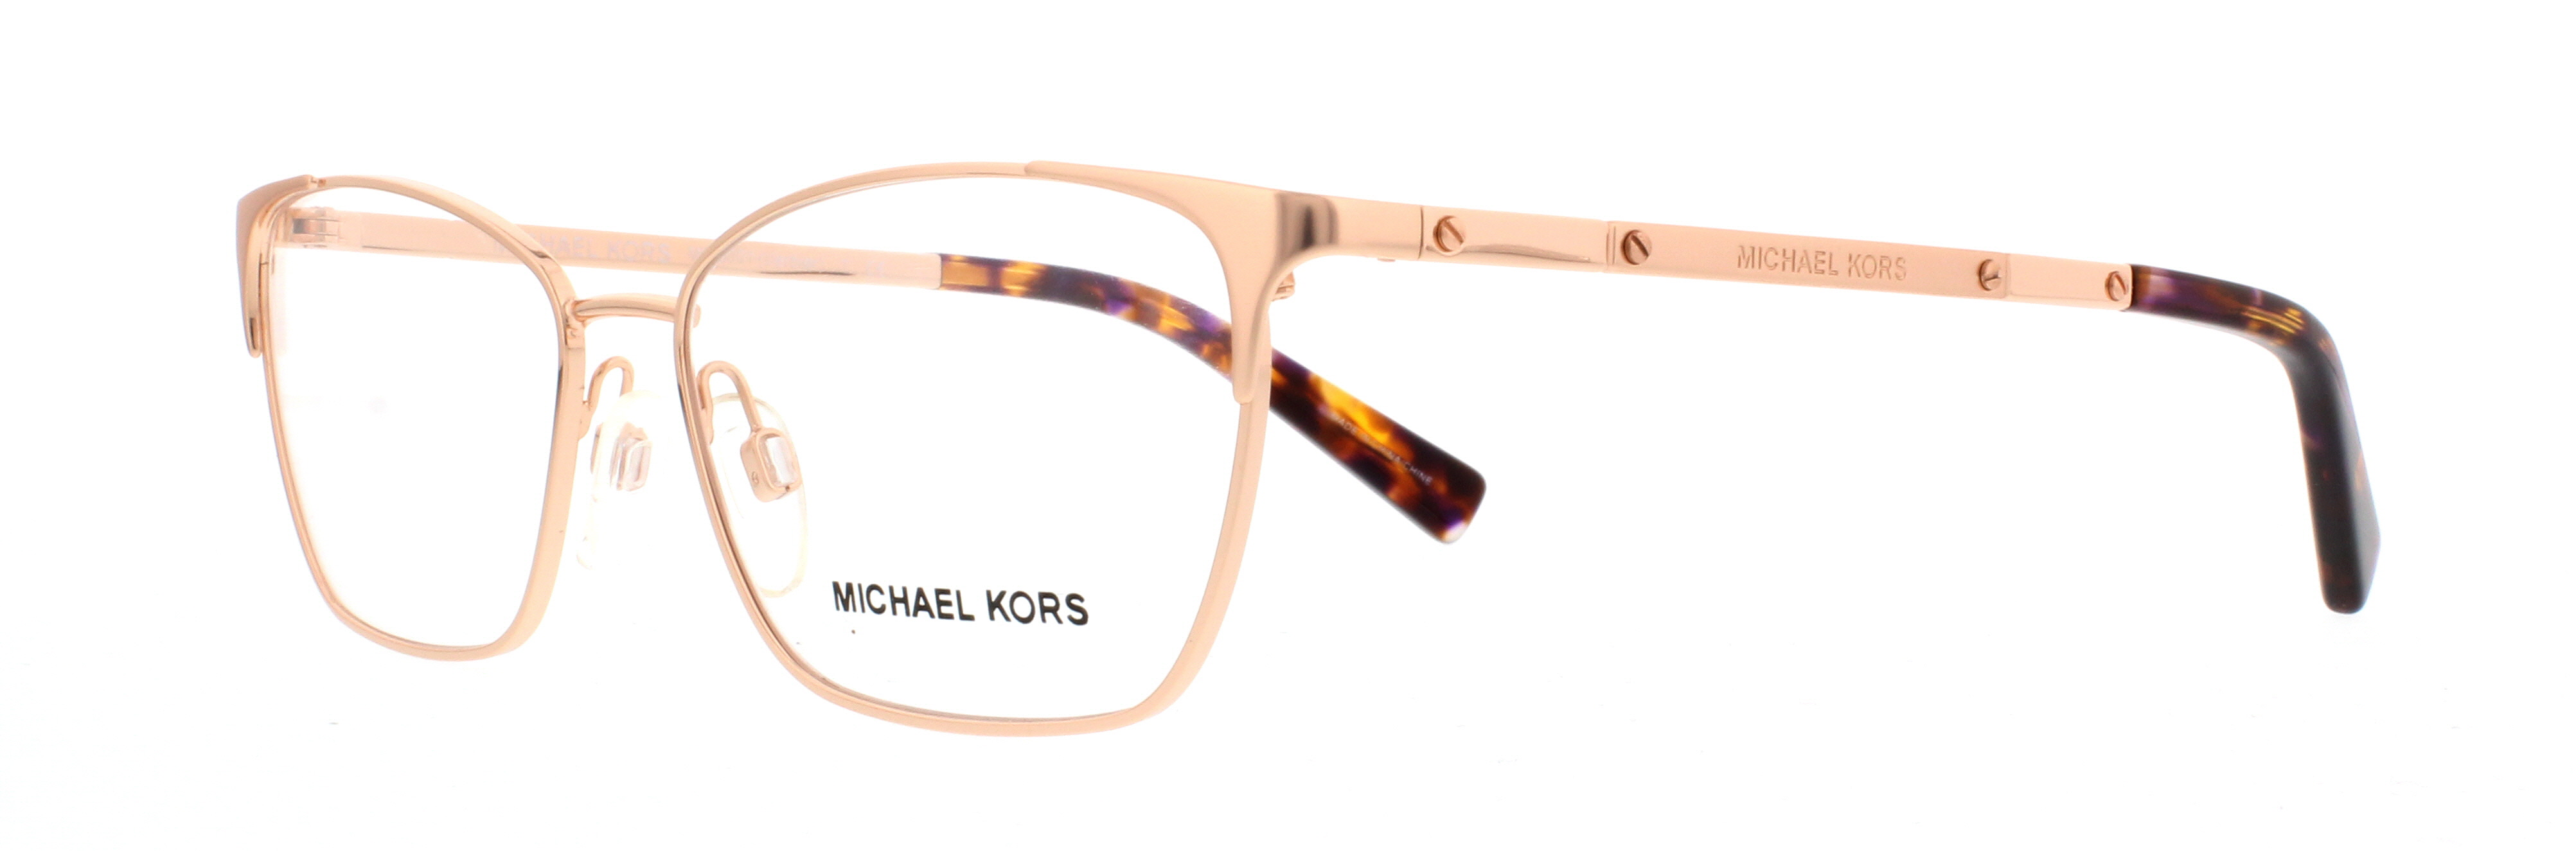 1026 rose gold - Michael Kors Frames